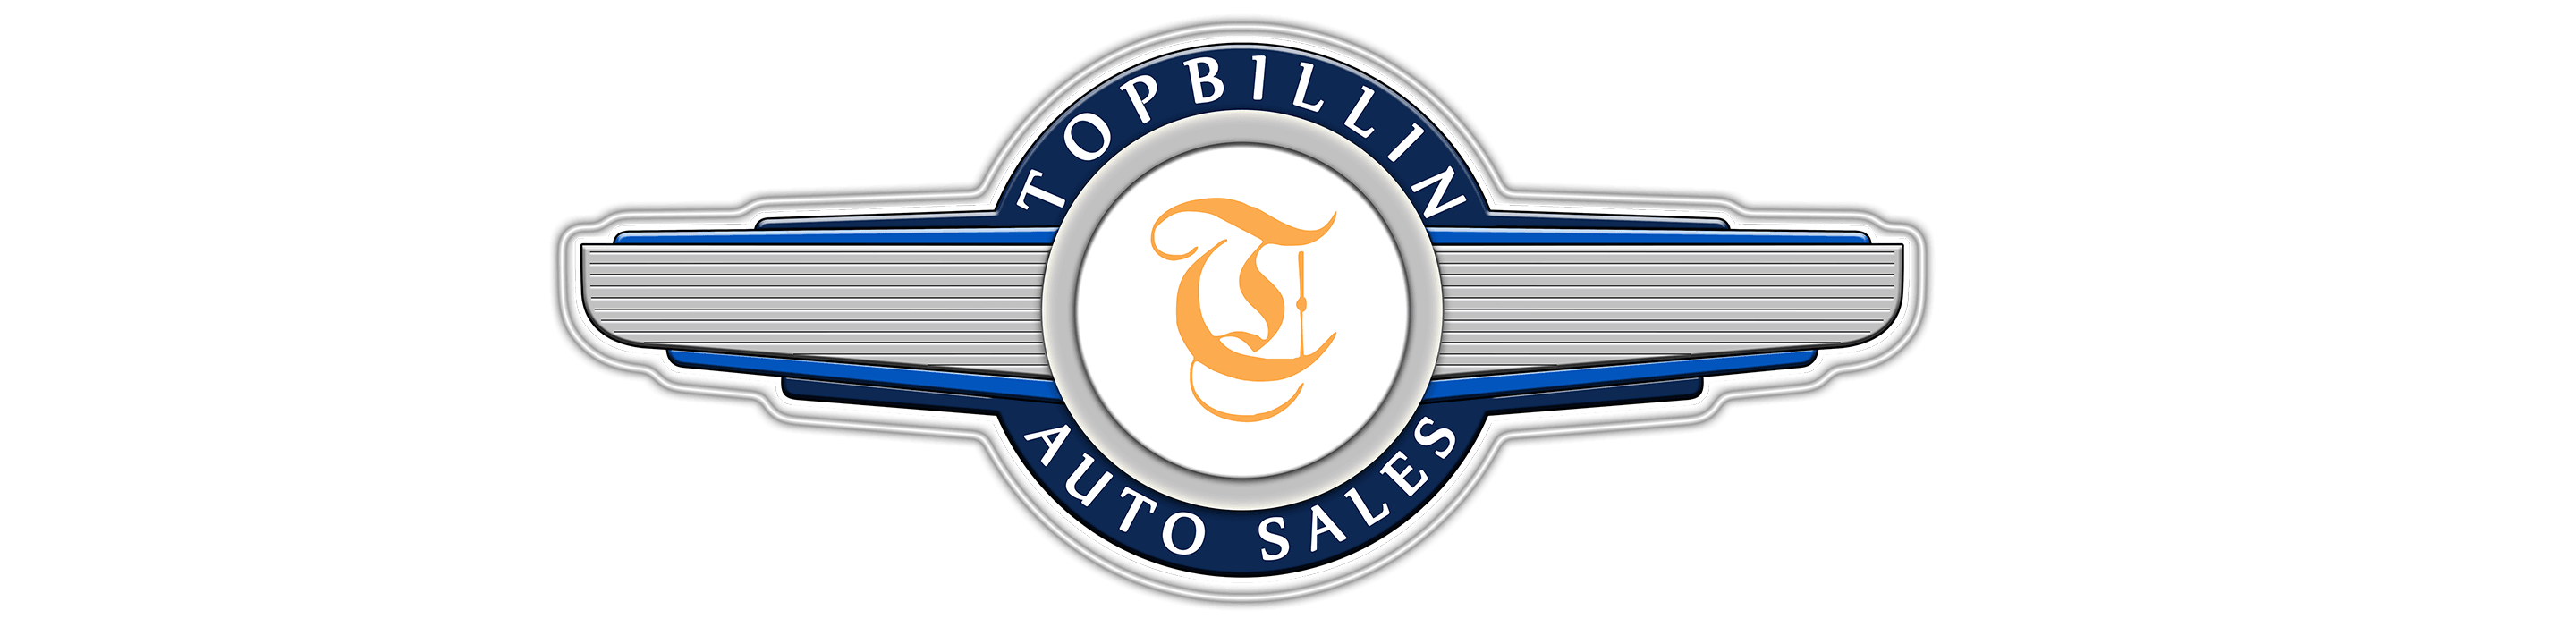 Toronto Car Sales >> Luxury Used Cars Toronto Used Car Loans Topbillin Auto Sales